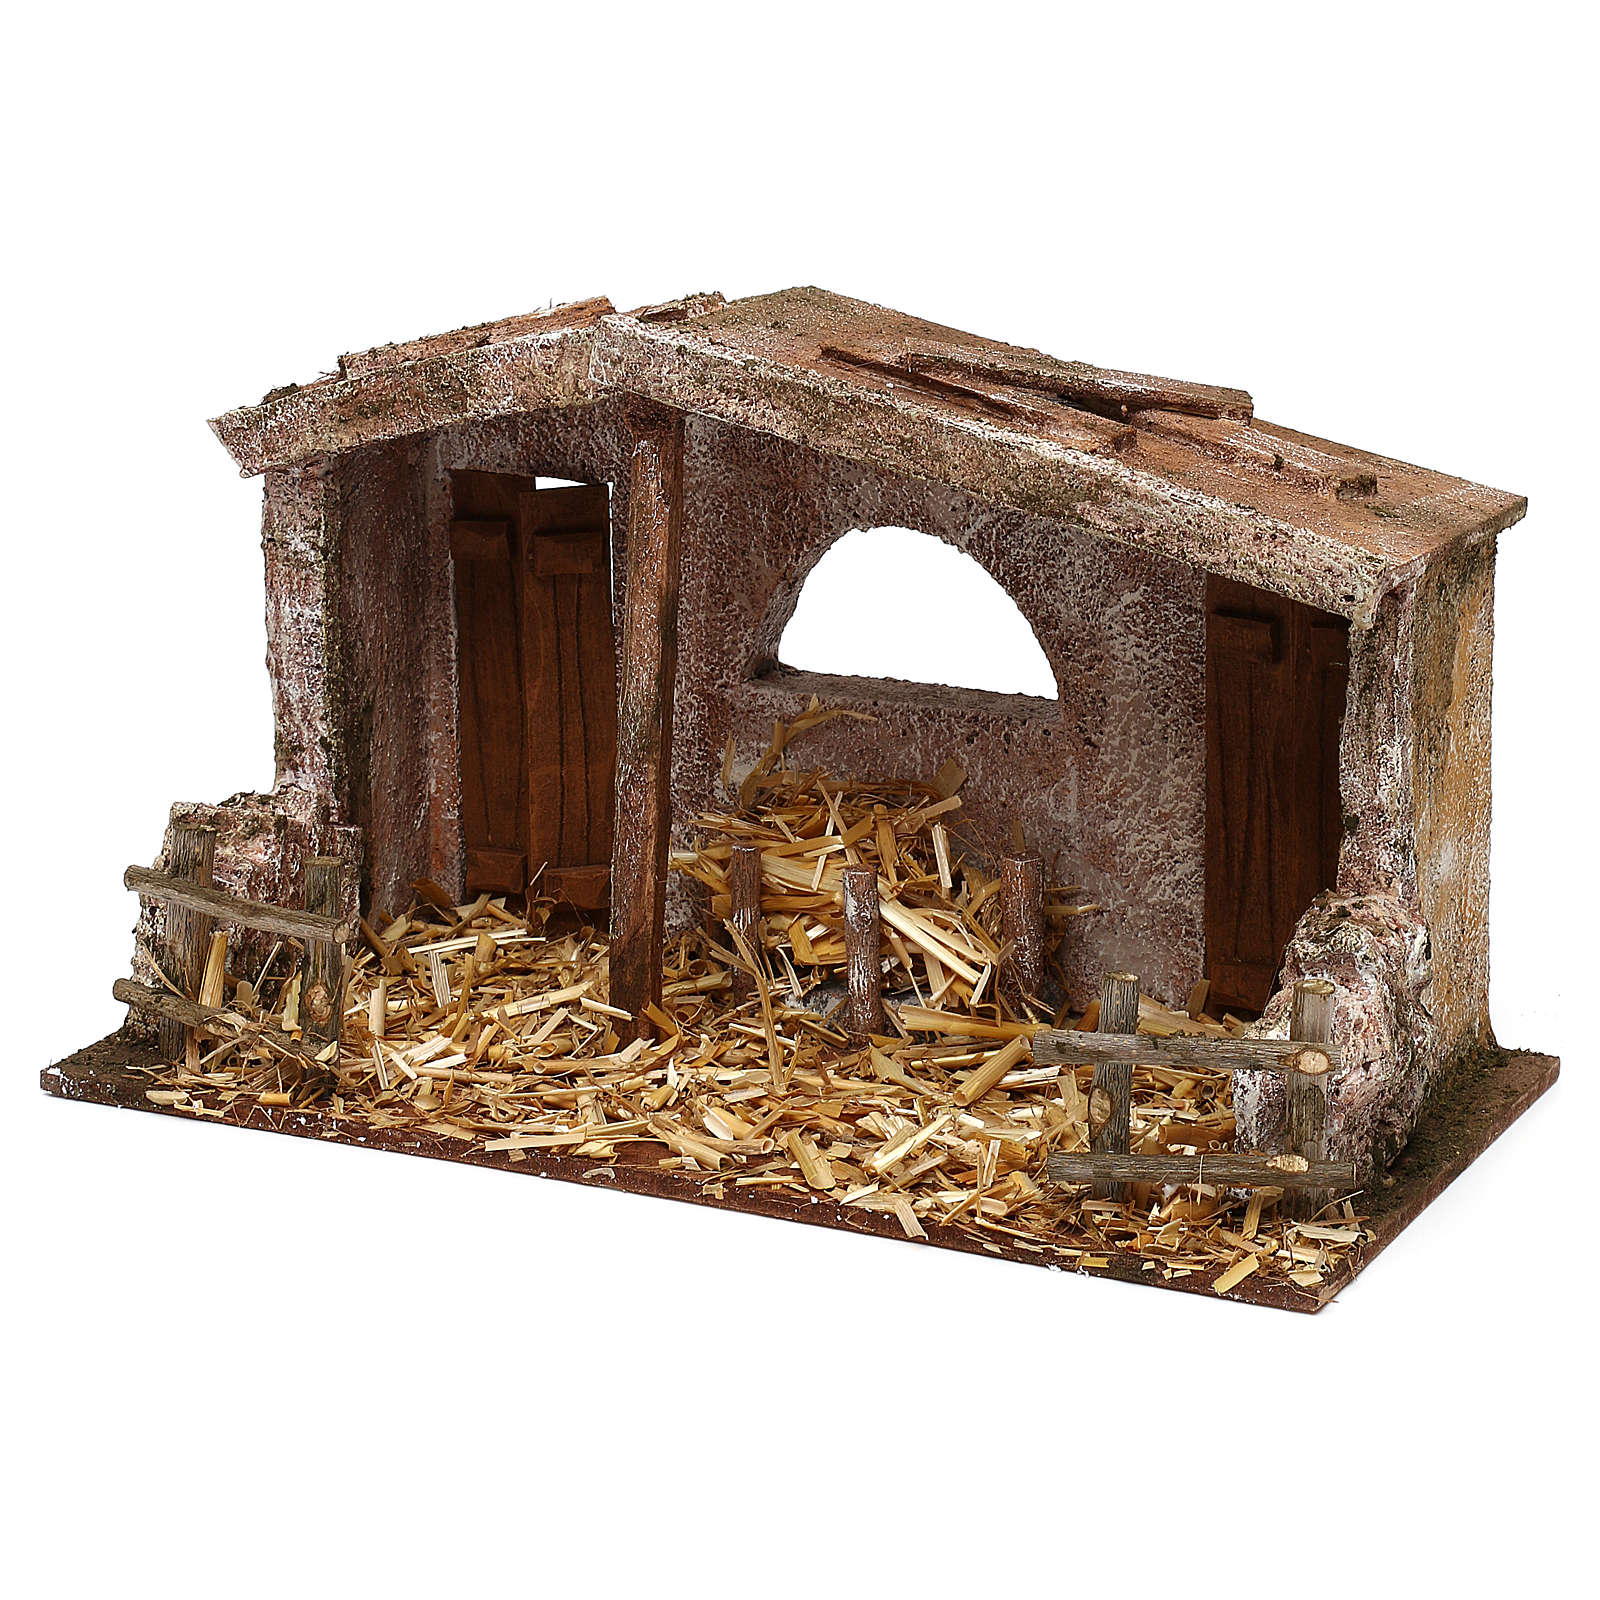 Shack with manger and two doors for 10 cm Nativity scene, 20x30x15 cm 4